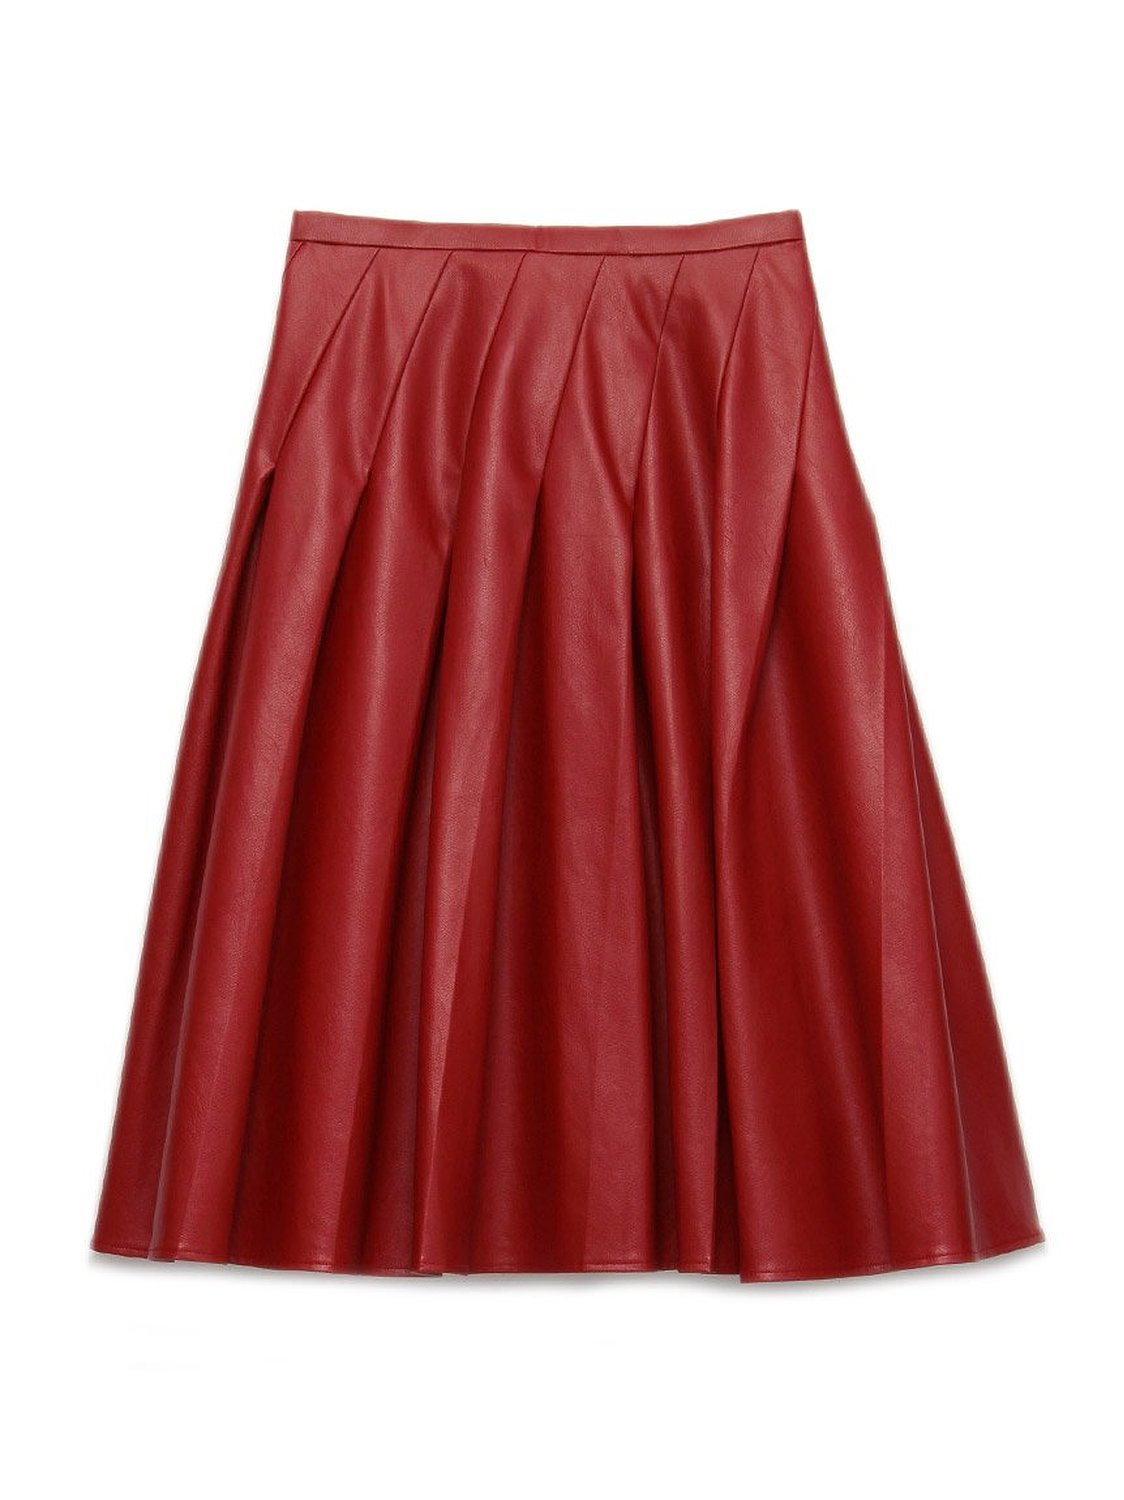 Popular Red A Line Skirt Plus Size-Buy Cheap Red A Line Skirt Plus ...